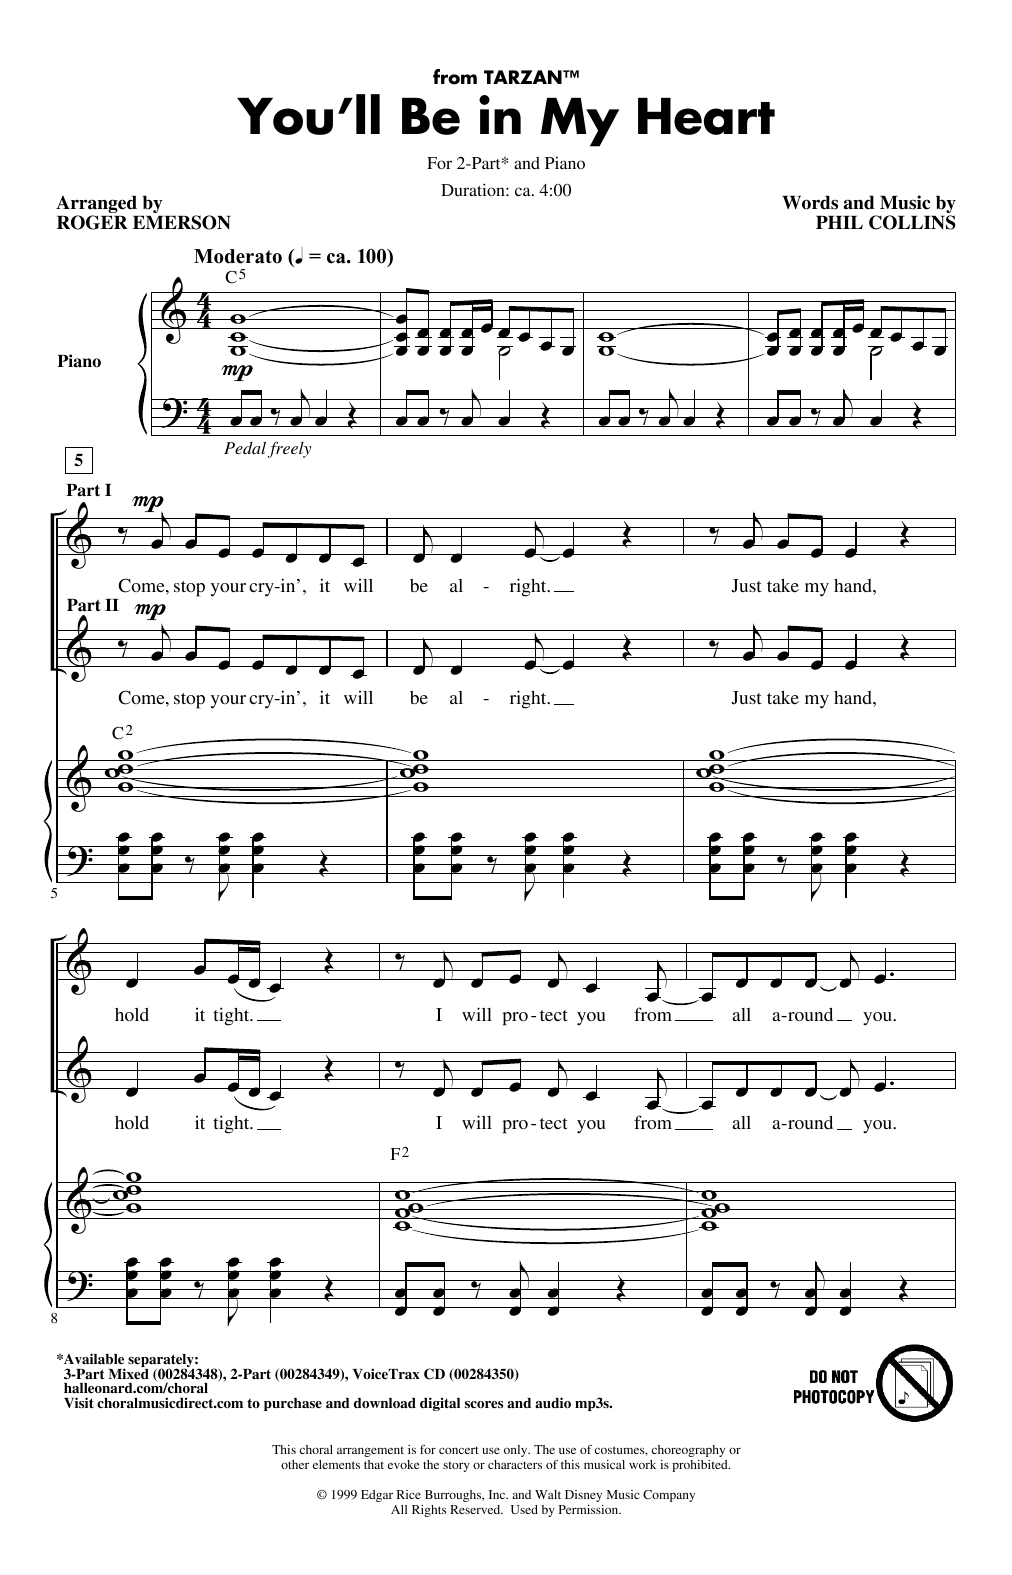 Phil Collins You'll Be In My Heart (from Tarzan) (arr. Roger Emerson) sheet music notes and chords